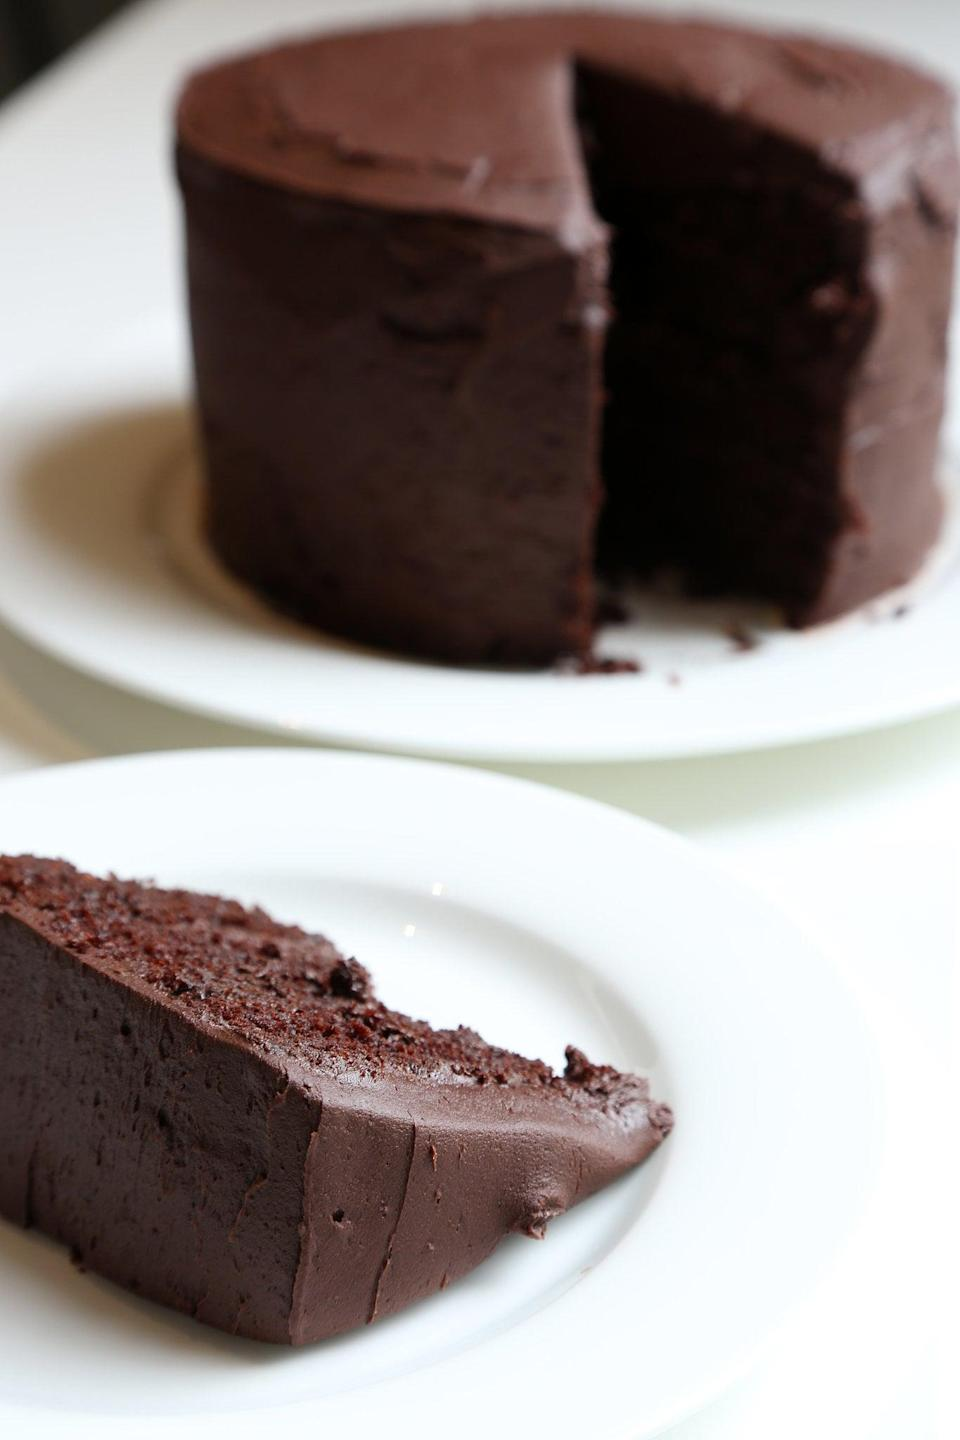 """<p>Imagine: a chocolate cake with chocolate buttercream frosting. Yup, that's what you get when you make this moist, almost fudge-like delicacy. Due to the addition of cocoa powder, this treat isn't too tooth-achingly sweet but also not too bitter and dark either - aka the best of both worlds.</p> <p><strong>Get the recipe</strong>: <a href=""""https://www.popsugar.com/food/Chocolate-Cake-Chocolate-Buttercream-Recipe-34247299"""" class=""""link rapid-noclick-resp"""" rel=""""nofollow noopener"""" target=""""_blank"""" data-ylk=""""slk:chocolate cake"""">chocolate cake</a></p>"""